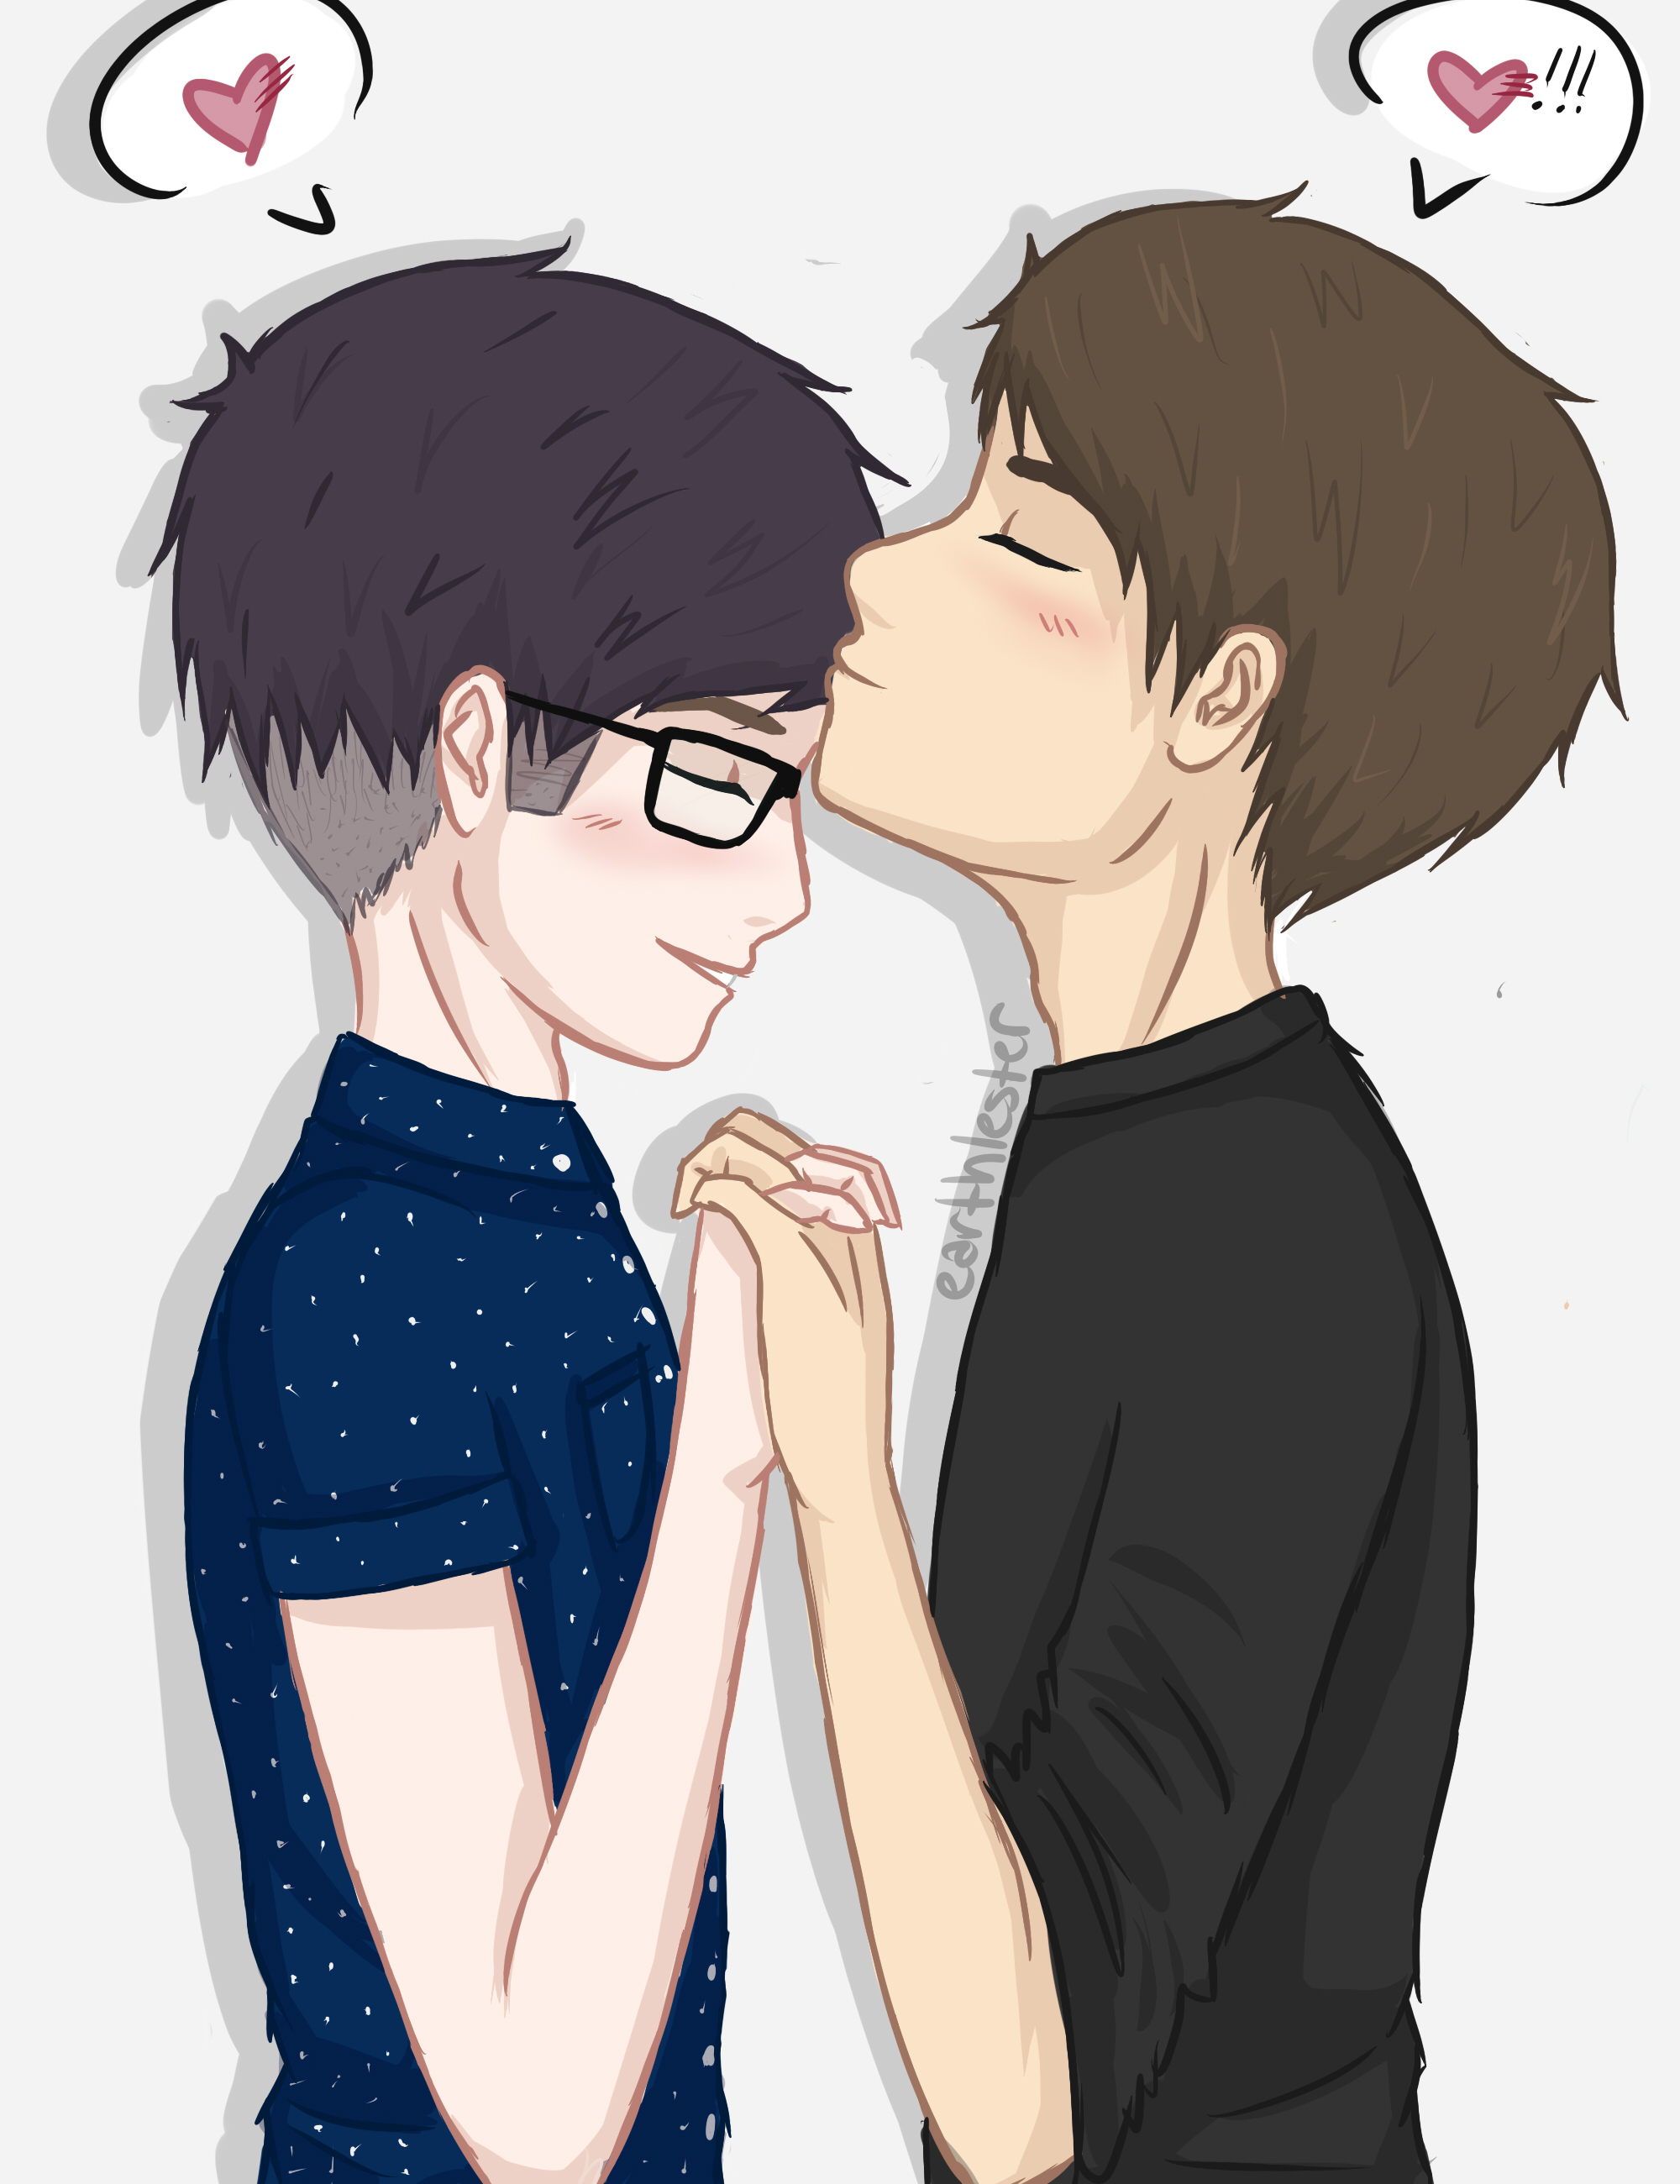 A collection of phan art for Fan art tumblr